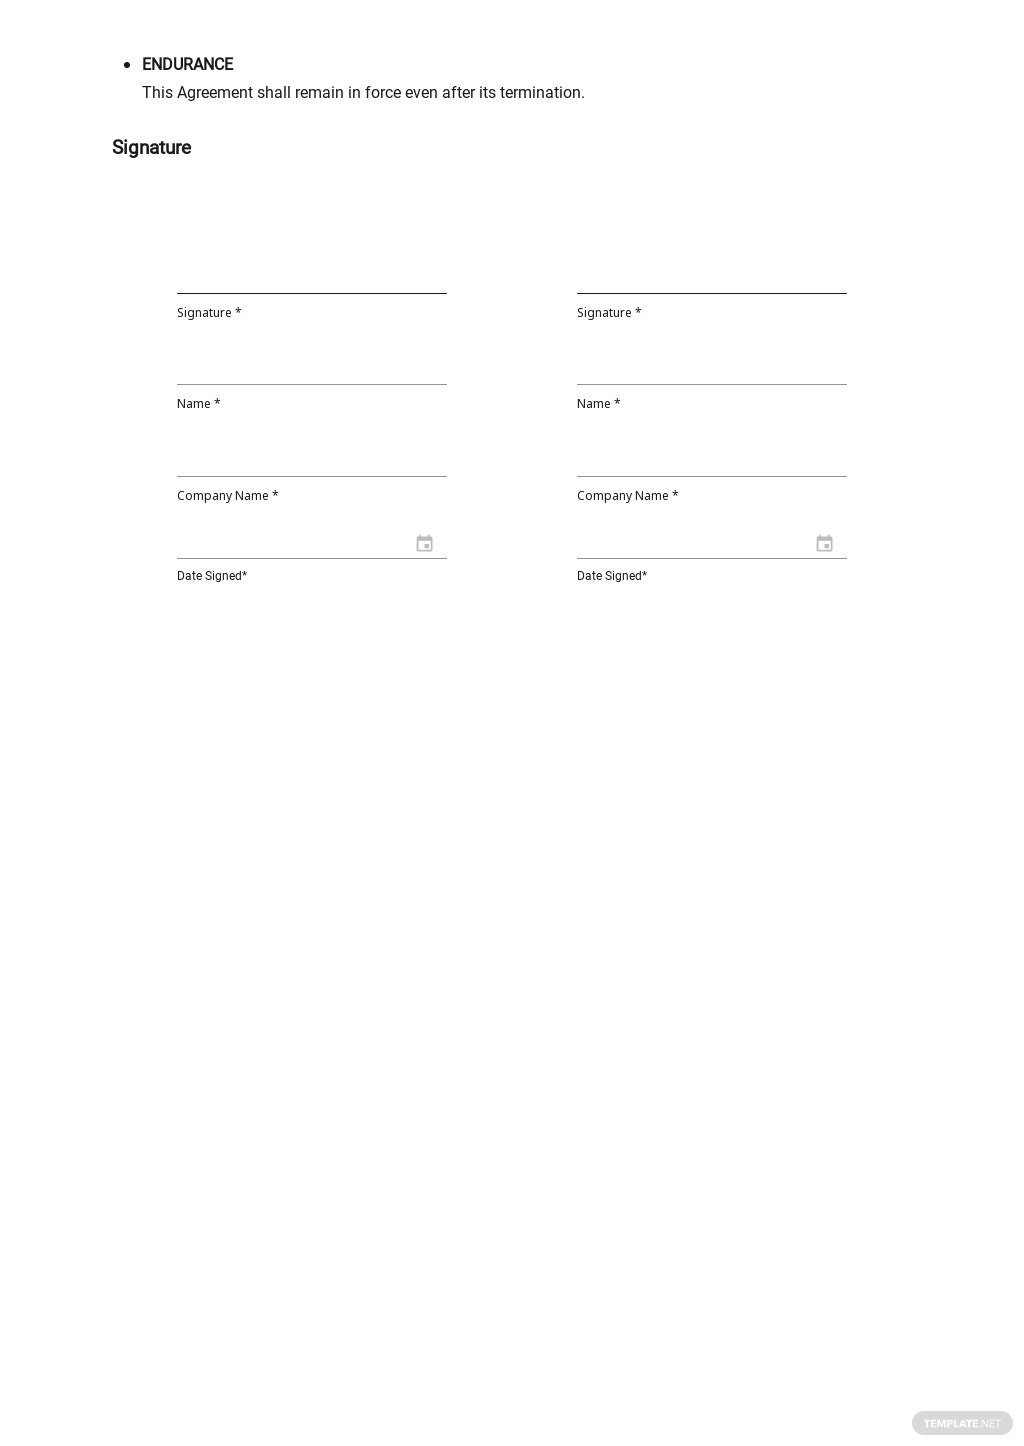 Restrictive Covenants for Employment Agreement Template 3.jpe